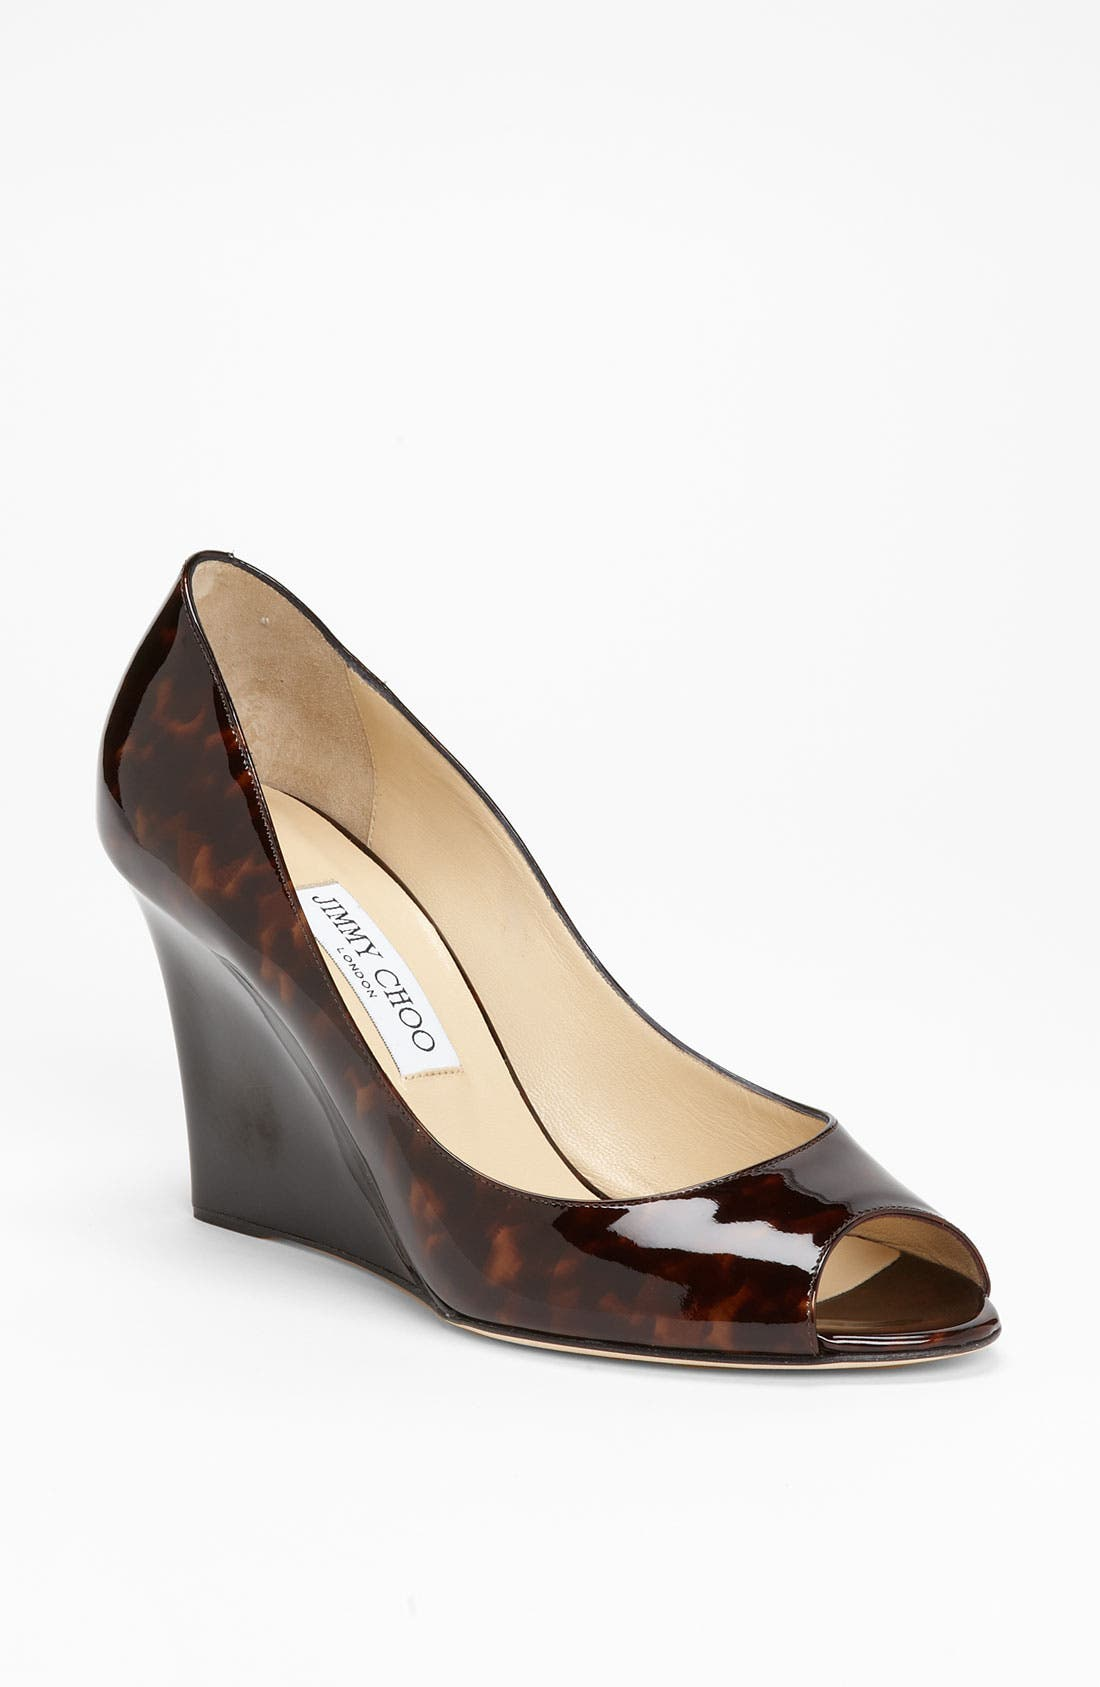 Alternate Image 1 Selected - Jimmy Choo 'Baxen' Wedge Pump